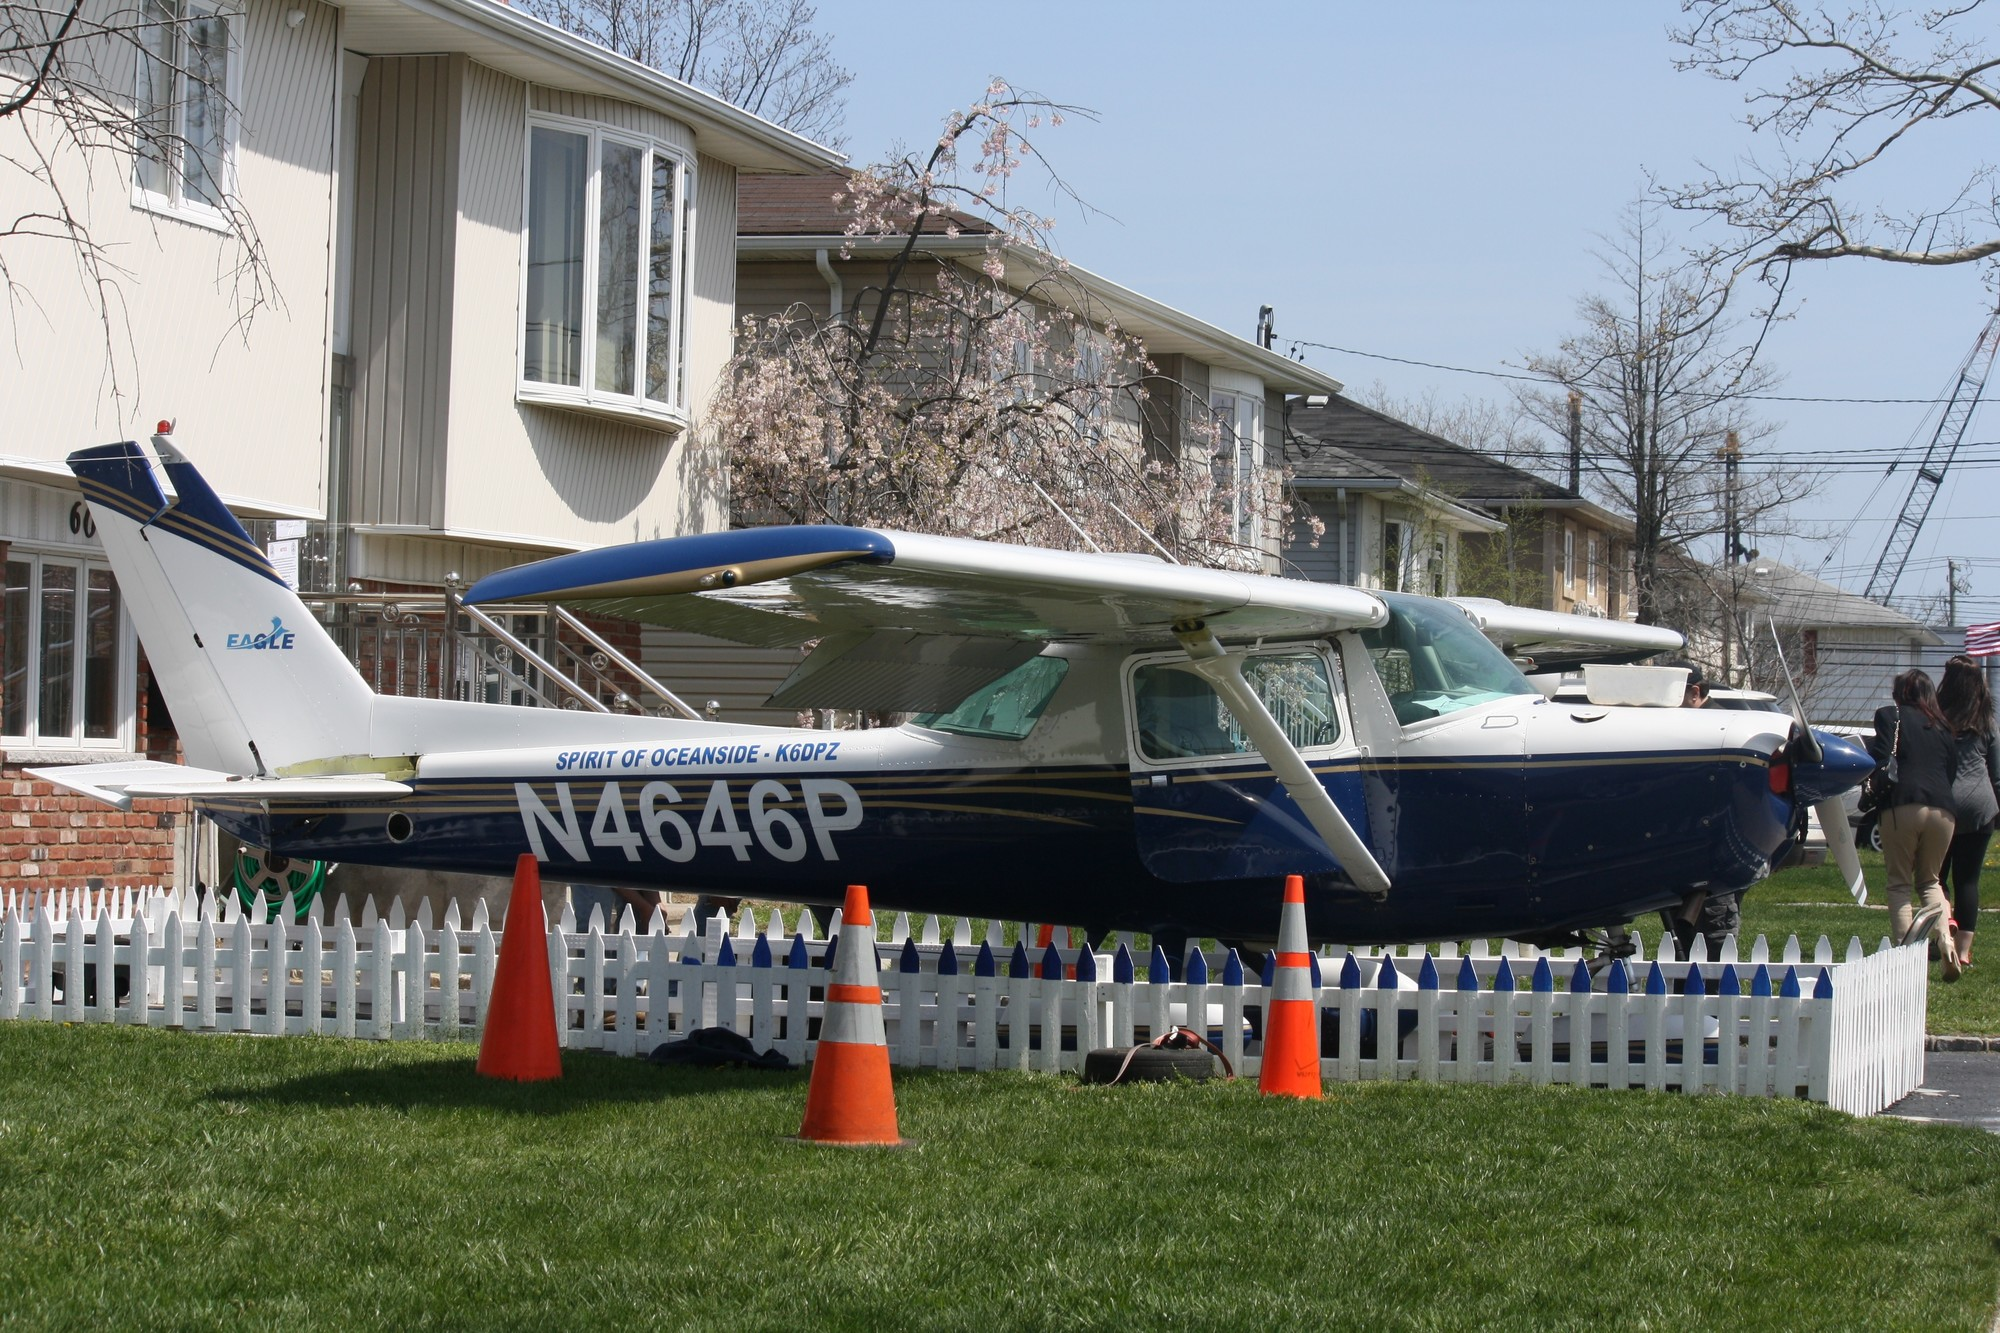 The Cessna 152, which used to stand in the driveway at Harold Guretzky's home until it was dismantled on April 20.